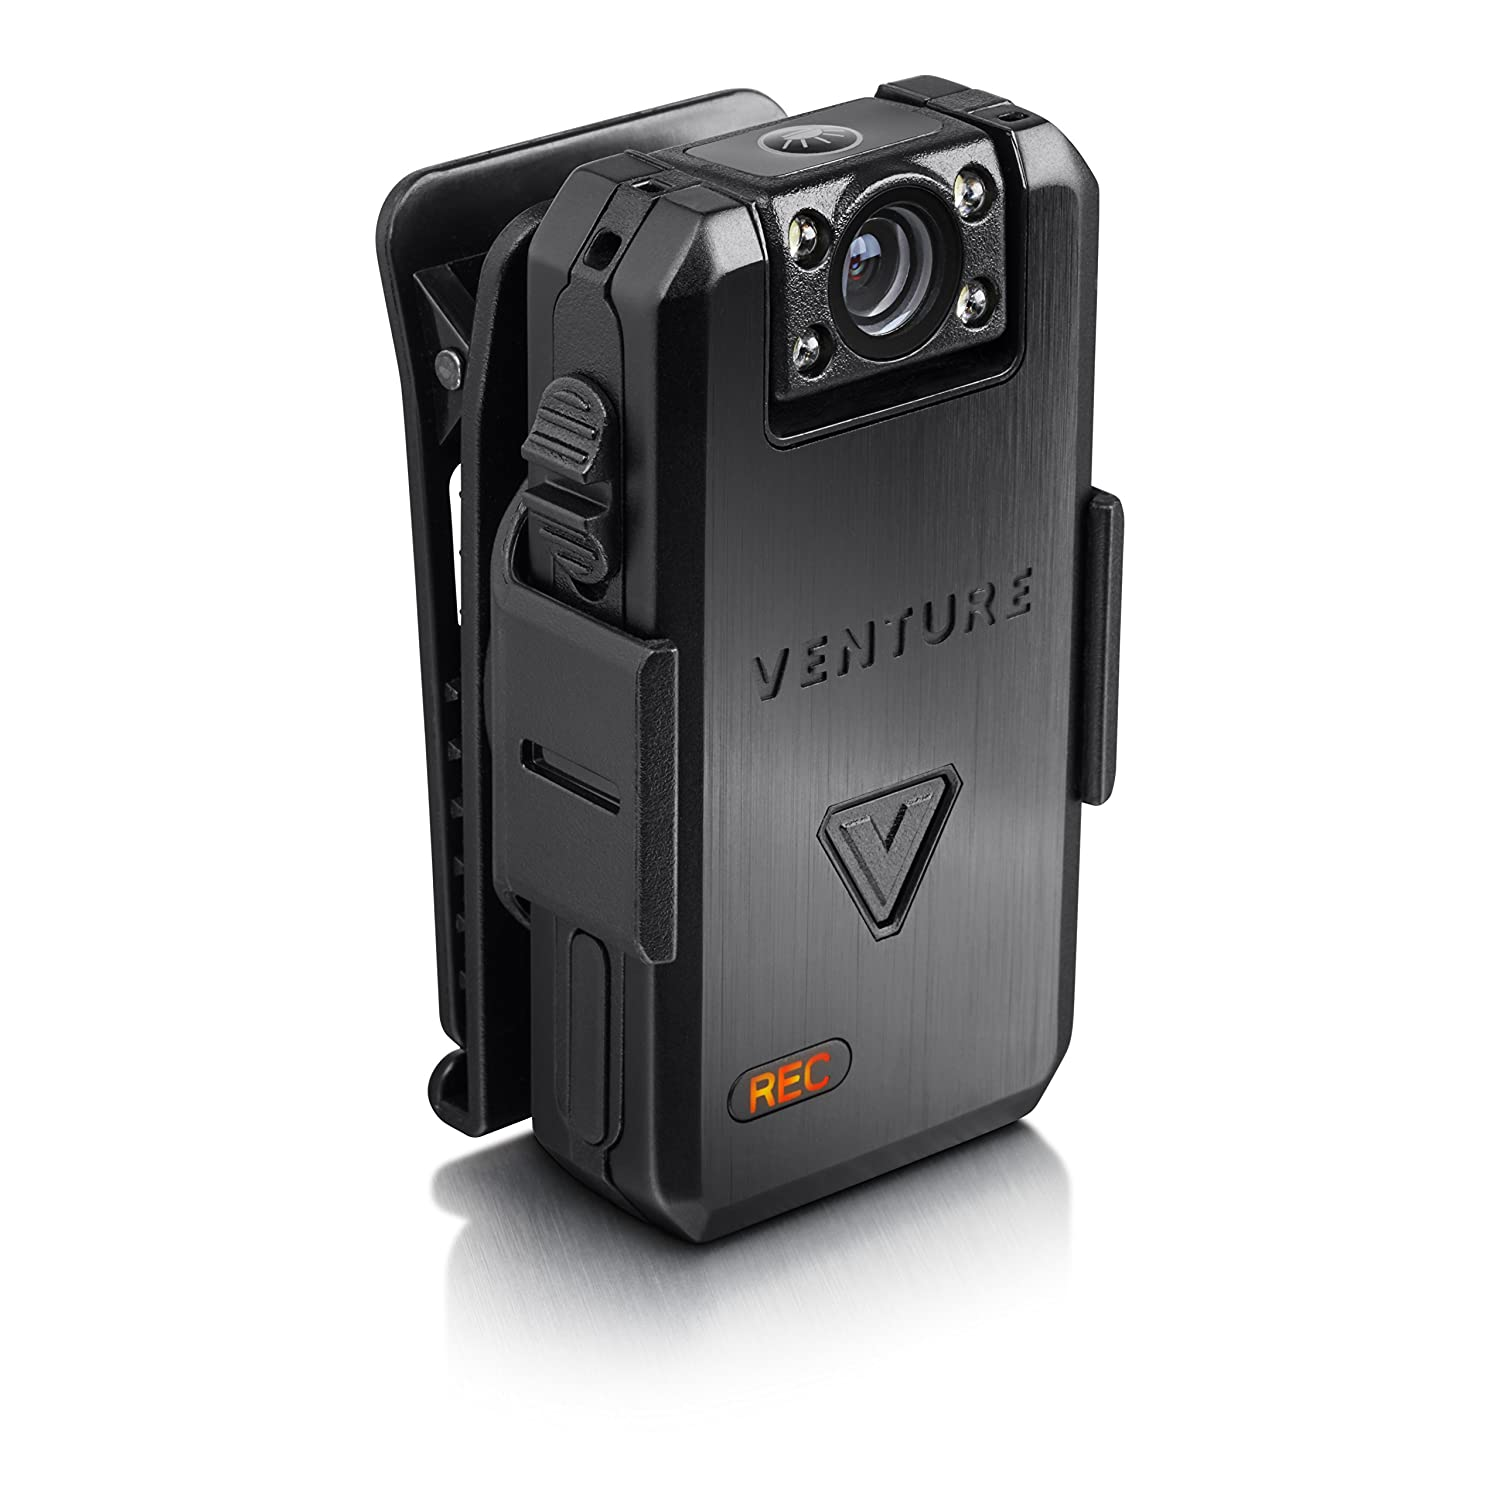 America's Body Camera  The Venture Camera That Converts from a Body Camera  to a Car Camera and Bicycle Camera